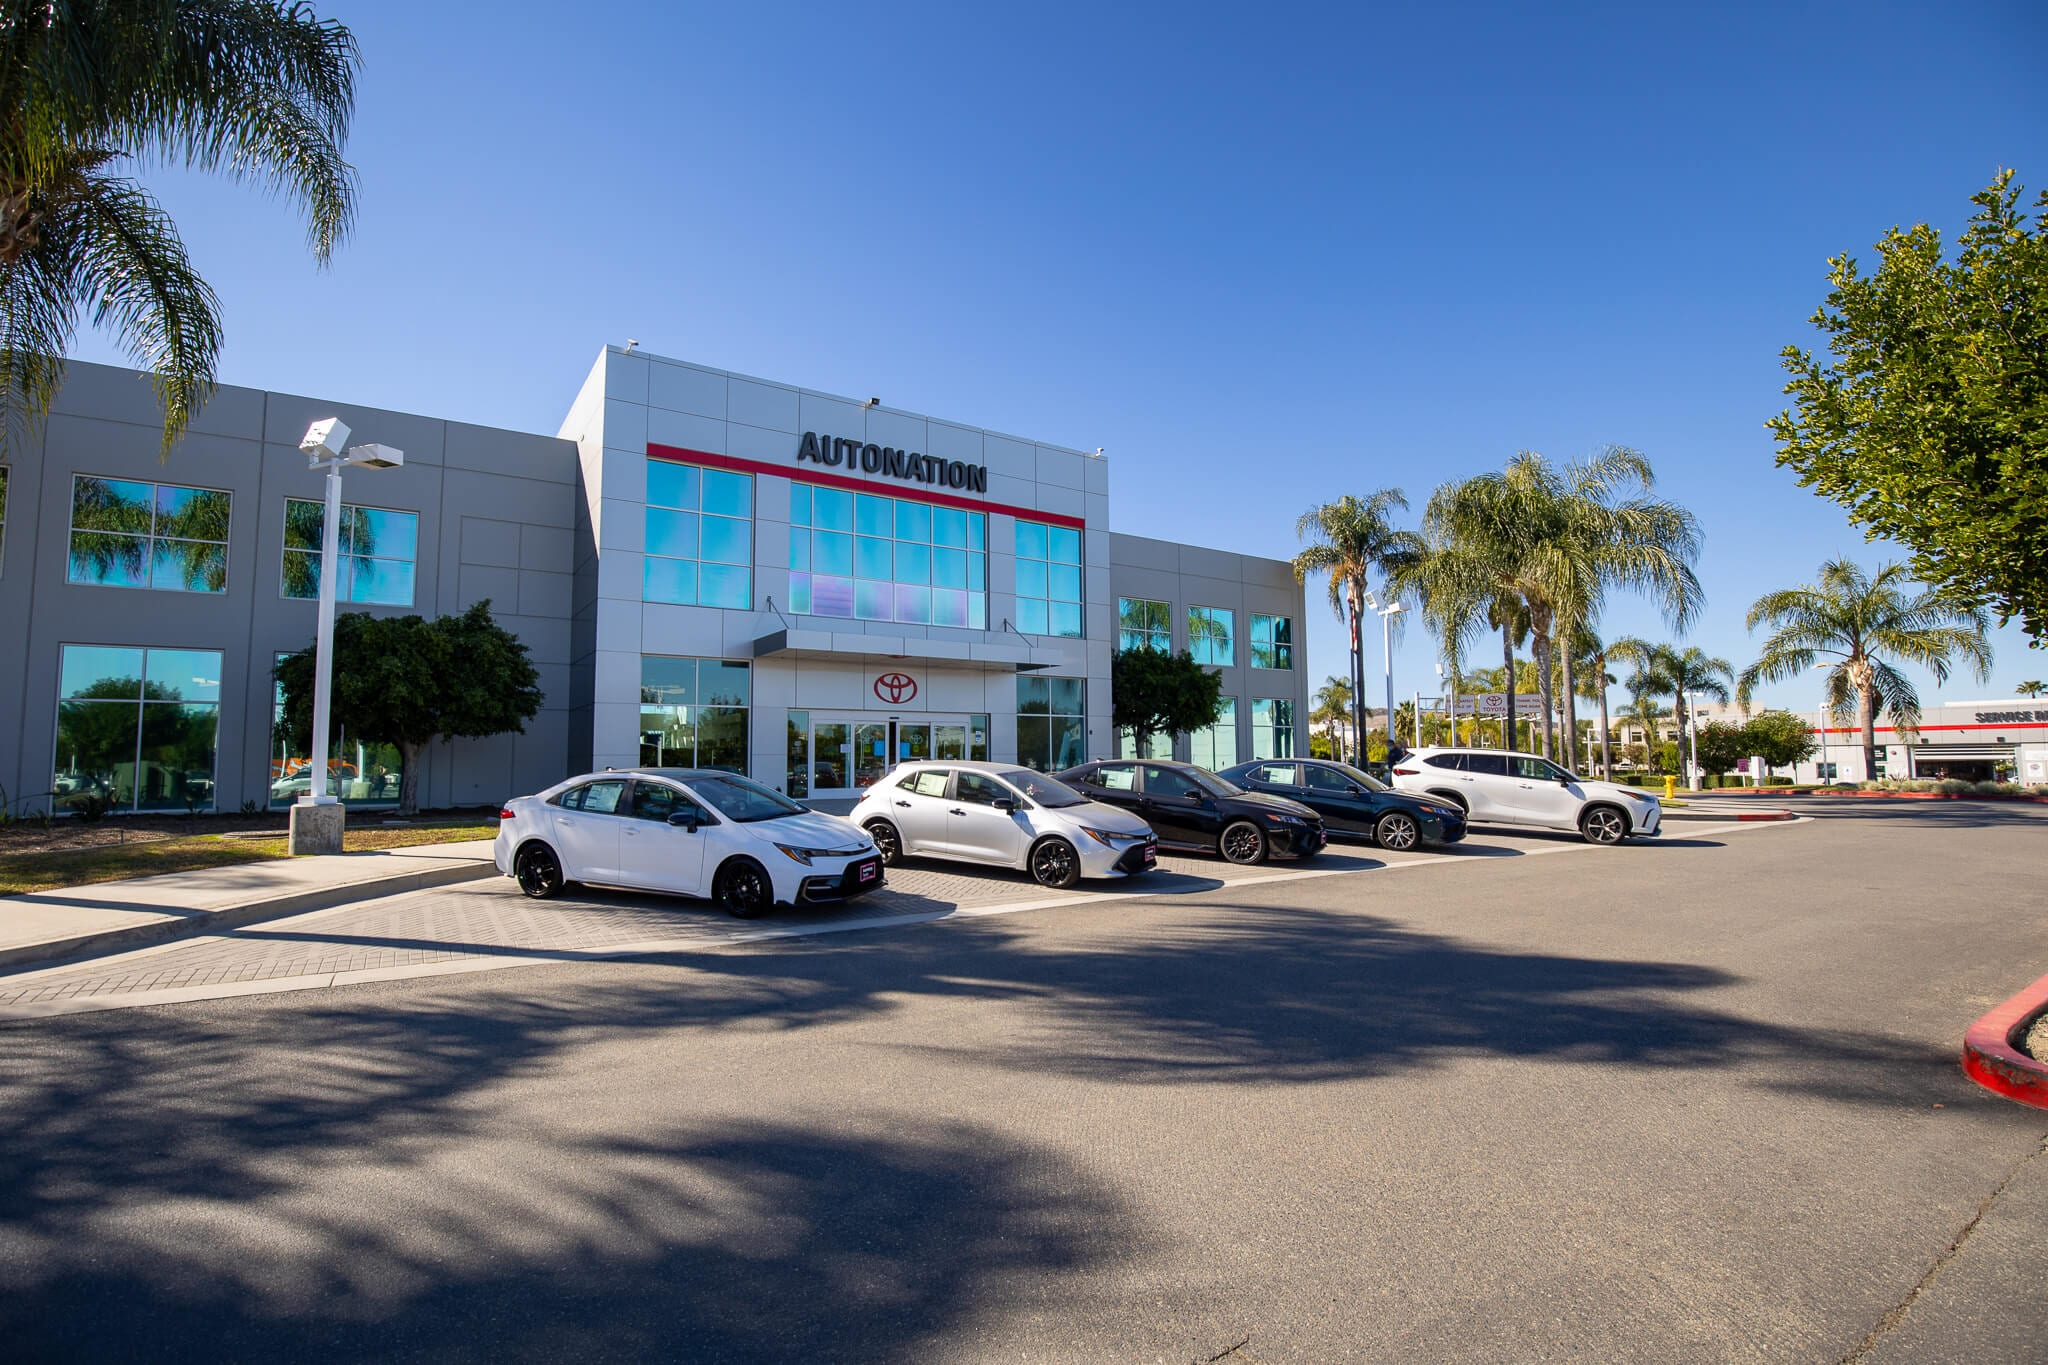 Exterior view of AutoNation Toyota Irvine in Irvine, CA